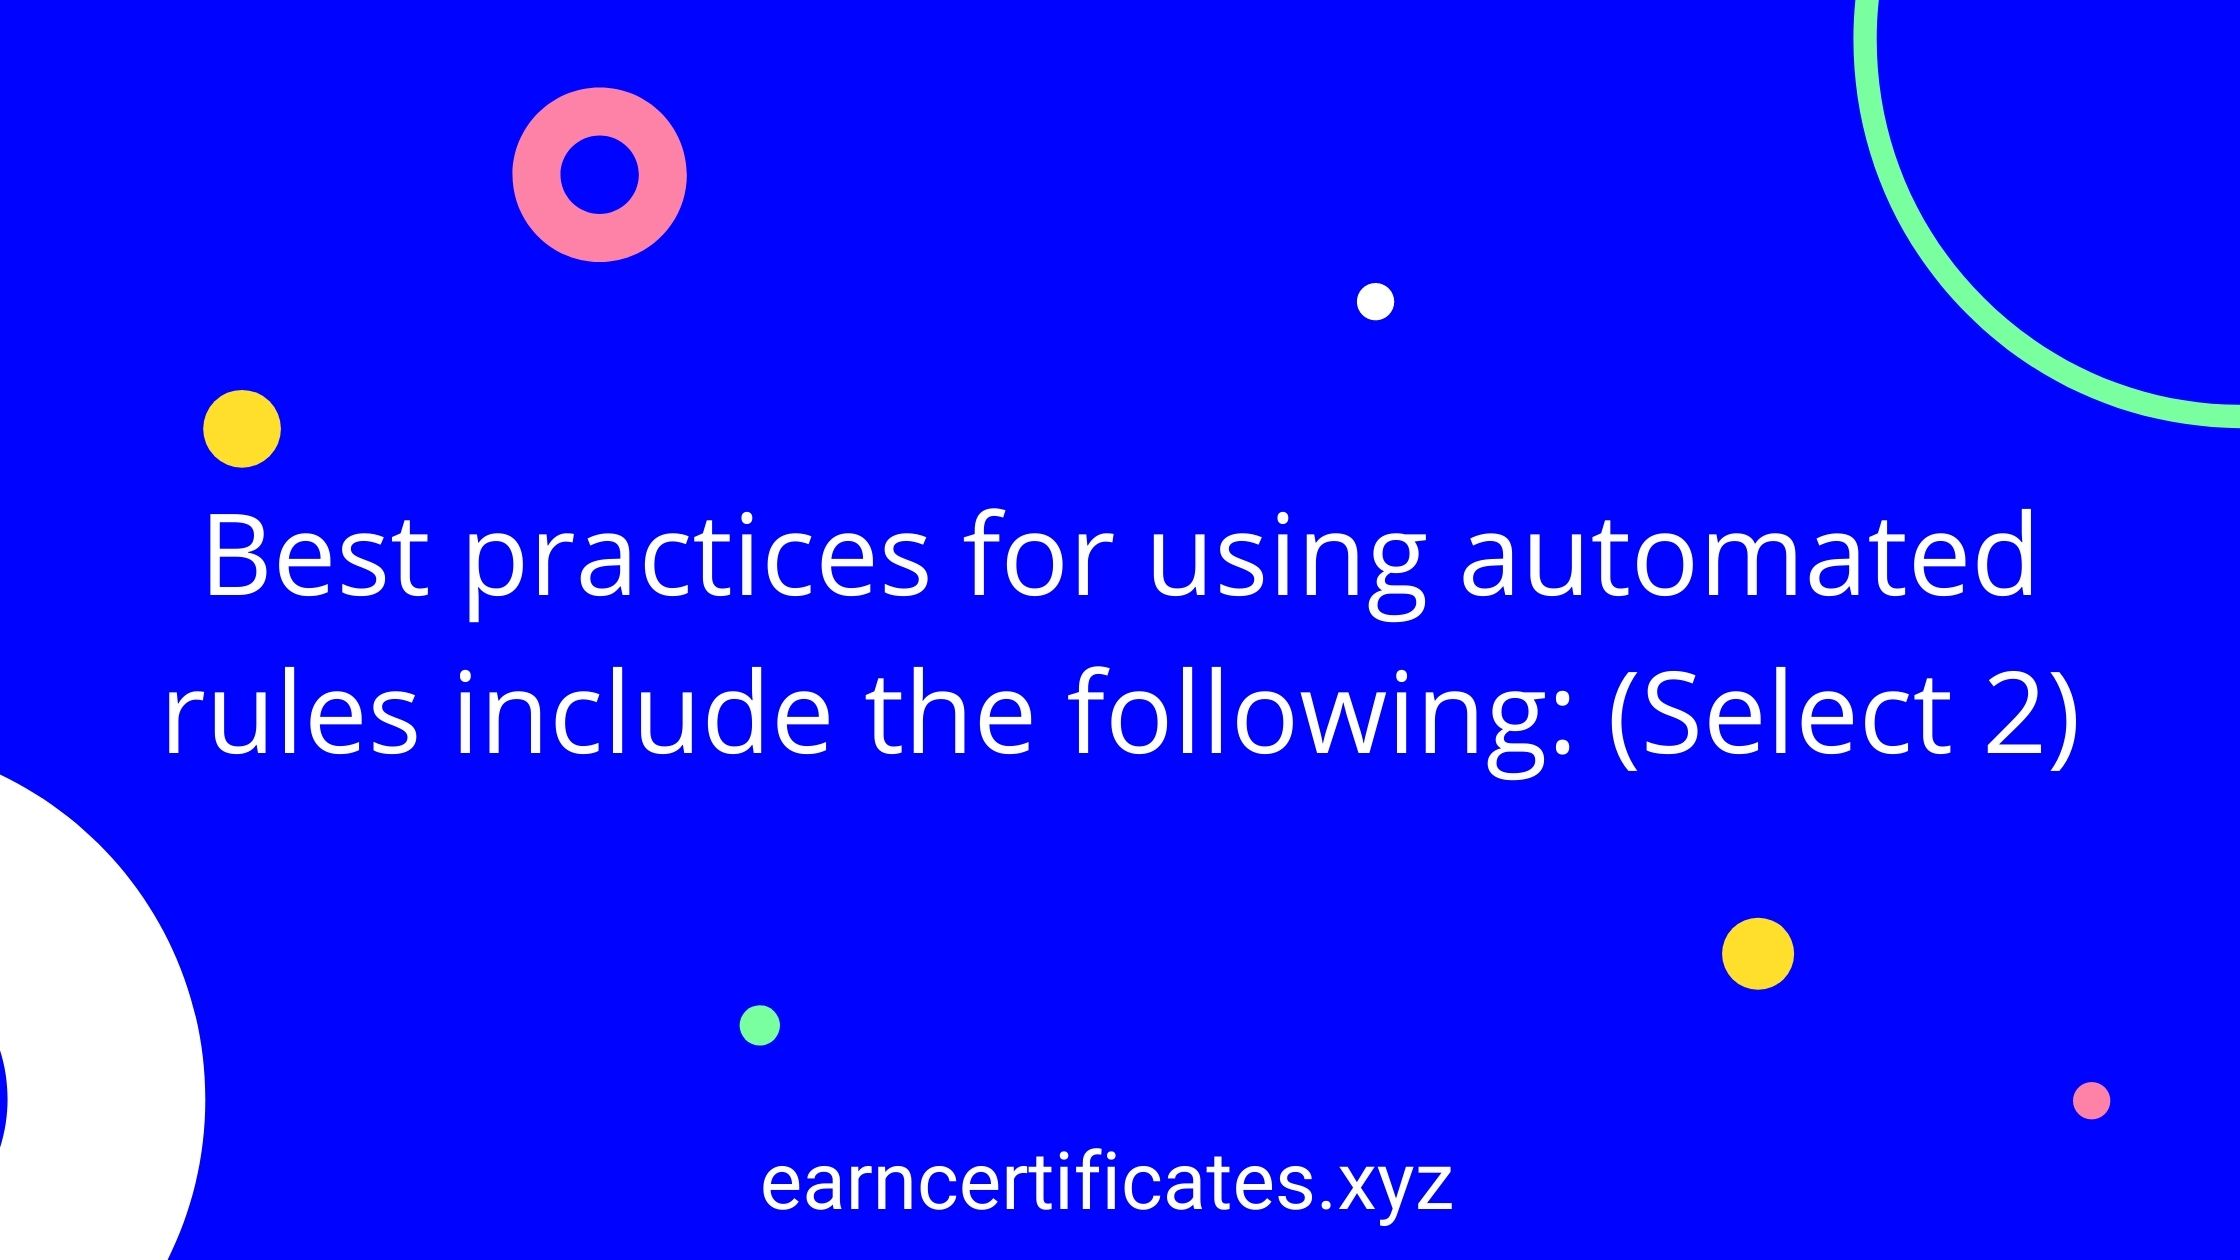 Best practices for using automated rules include the following: (Select 2)